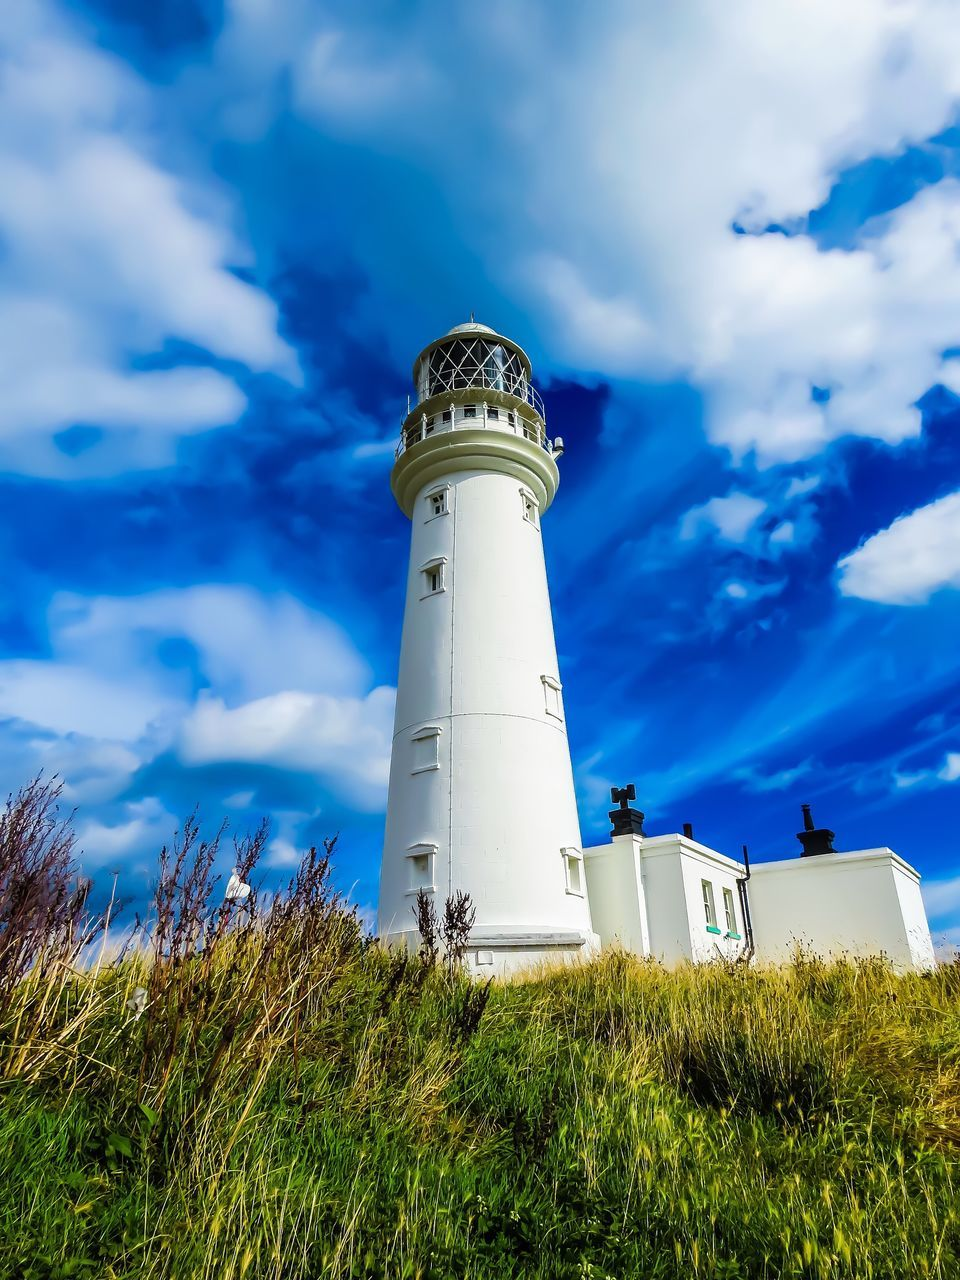 lighthouse, cloud - sky, sky, low angle view, guidance, day, grass, no people, outdoors, architecture, nature